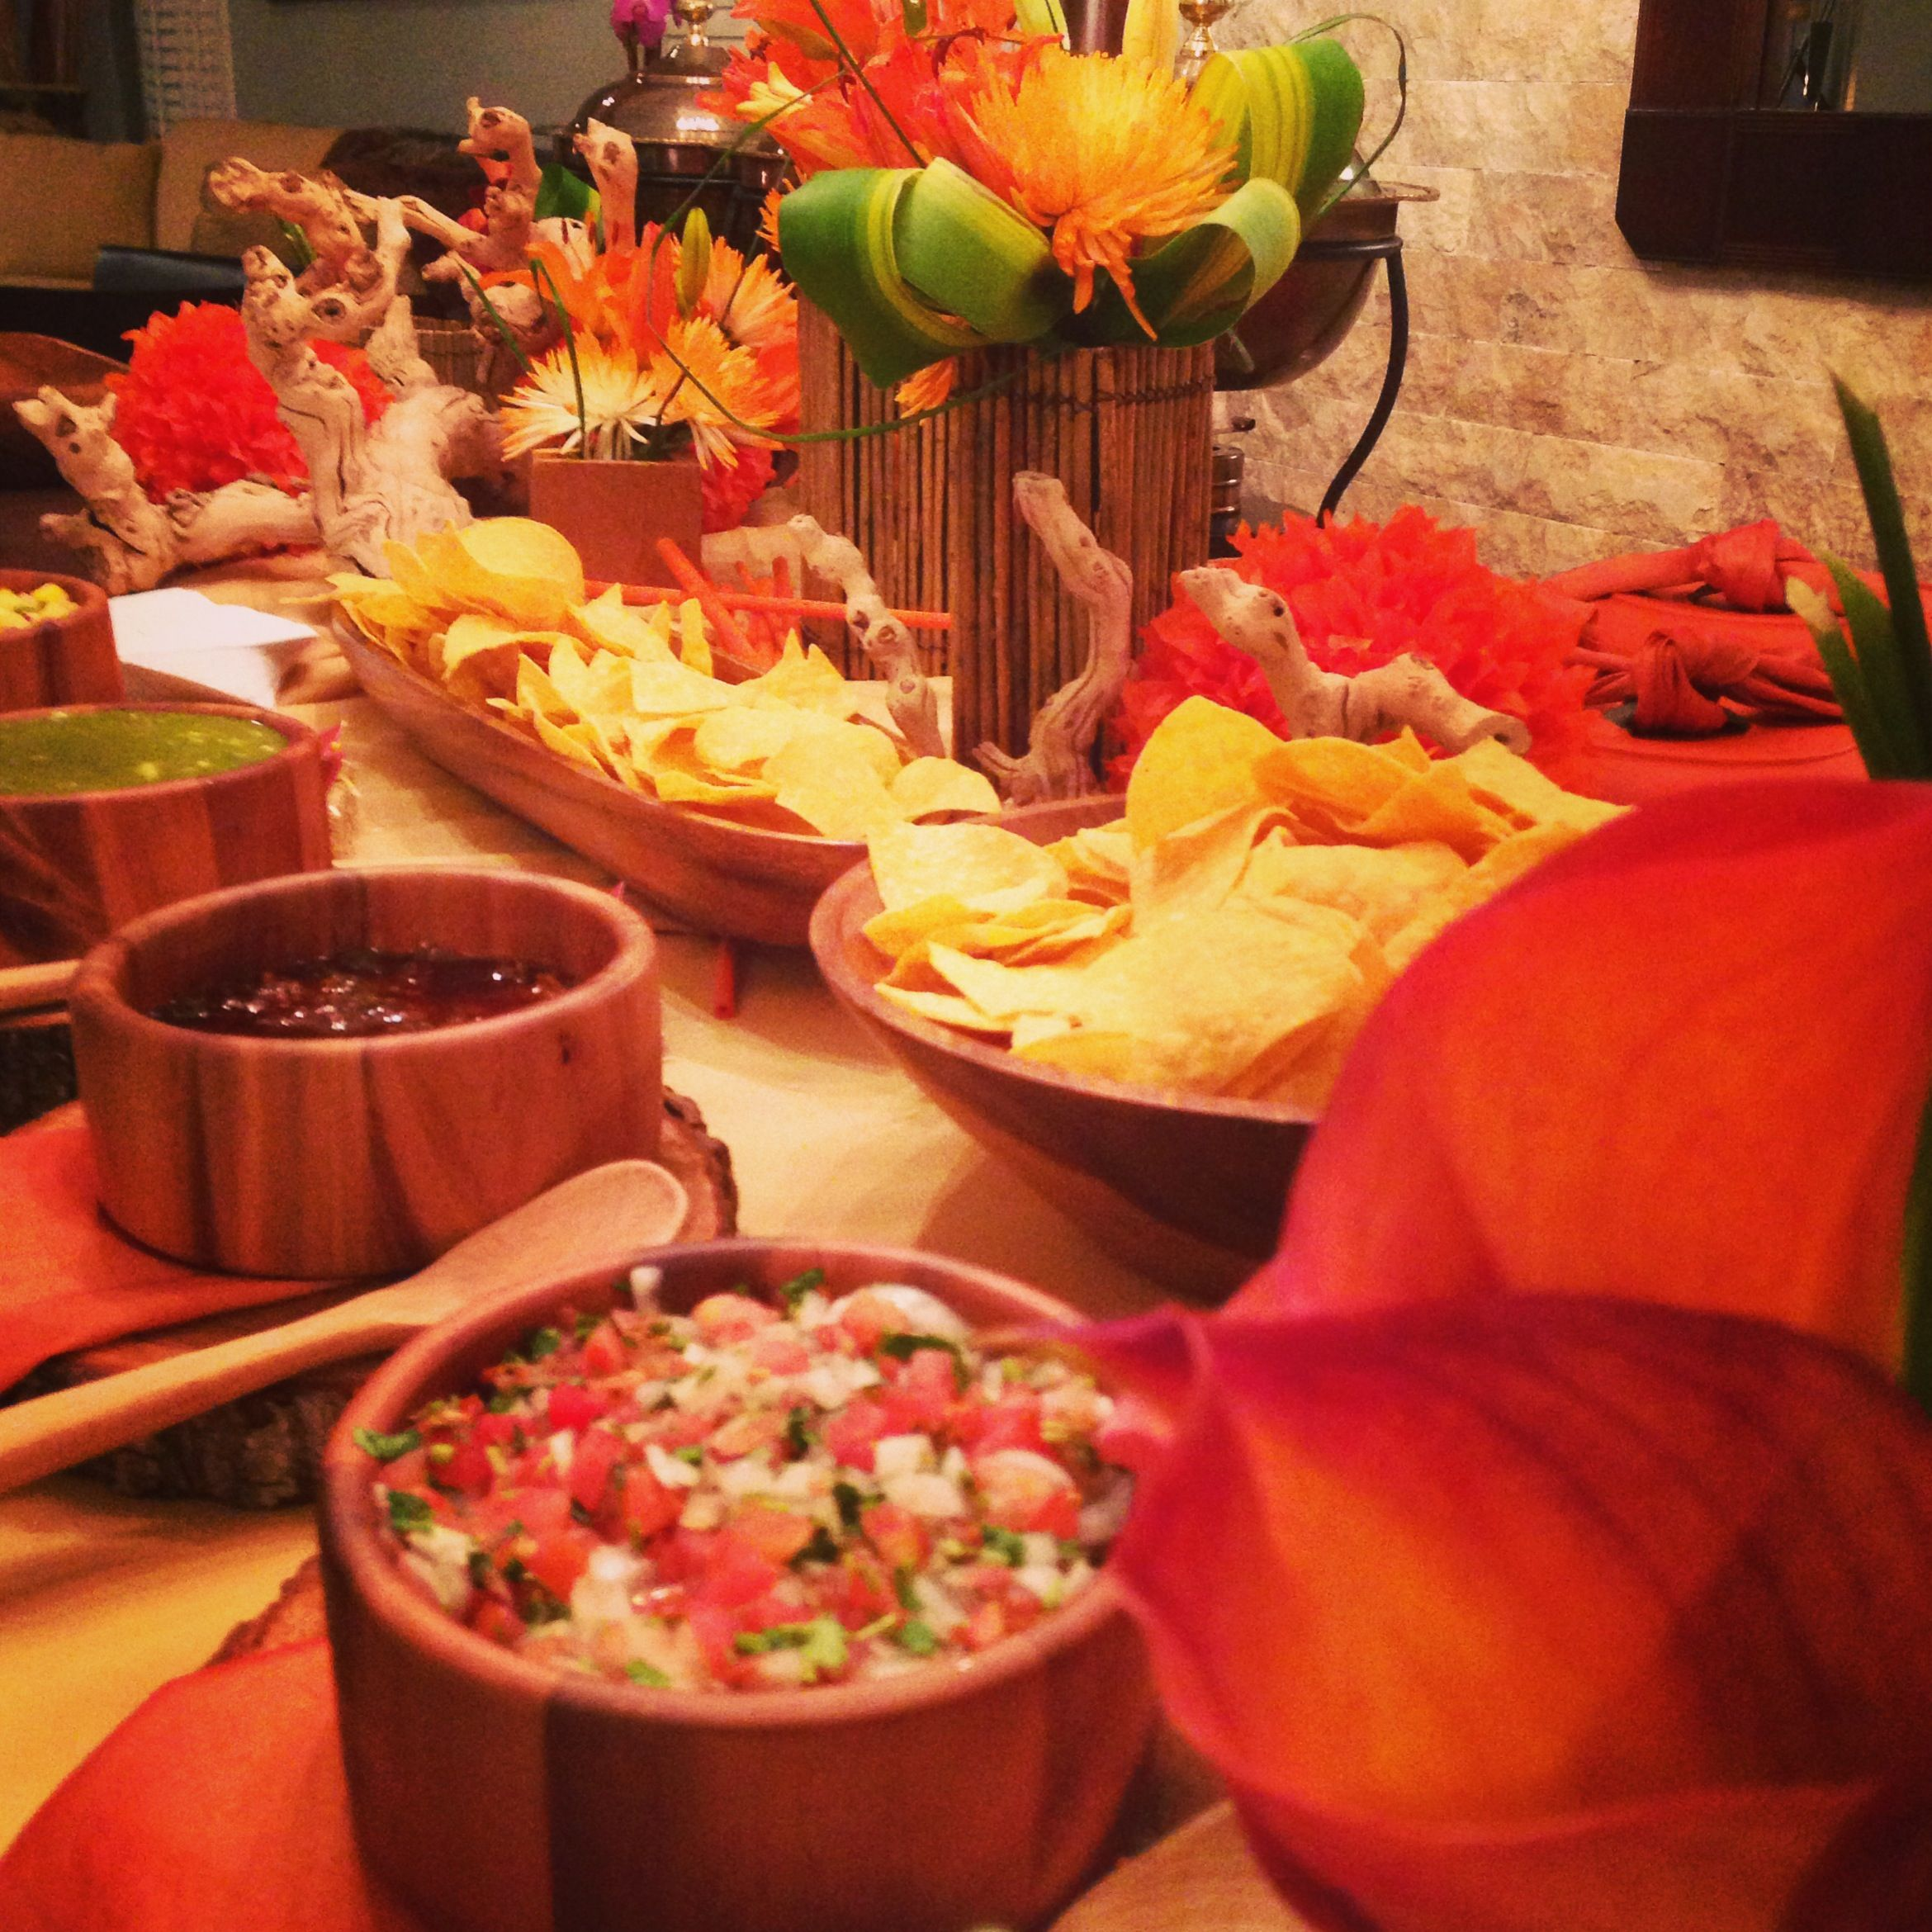 Good Buffet Food For Weddings: Mexican Wedding Foods, Mexican